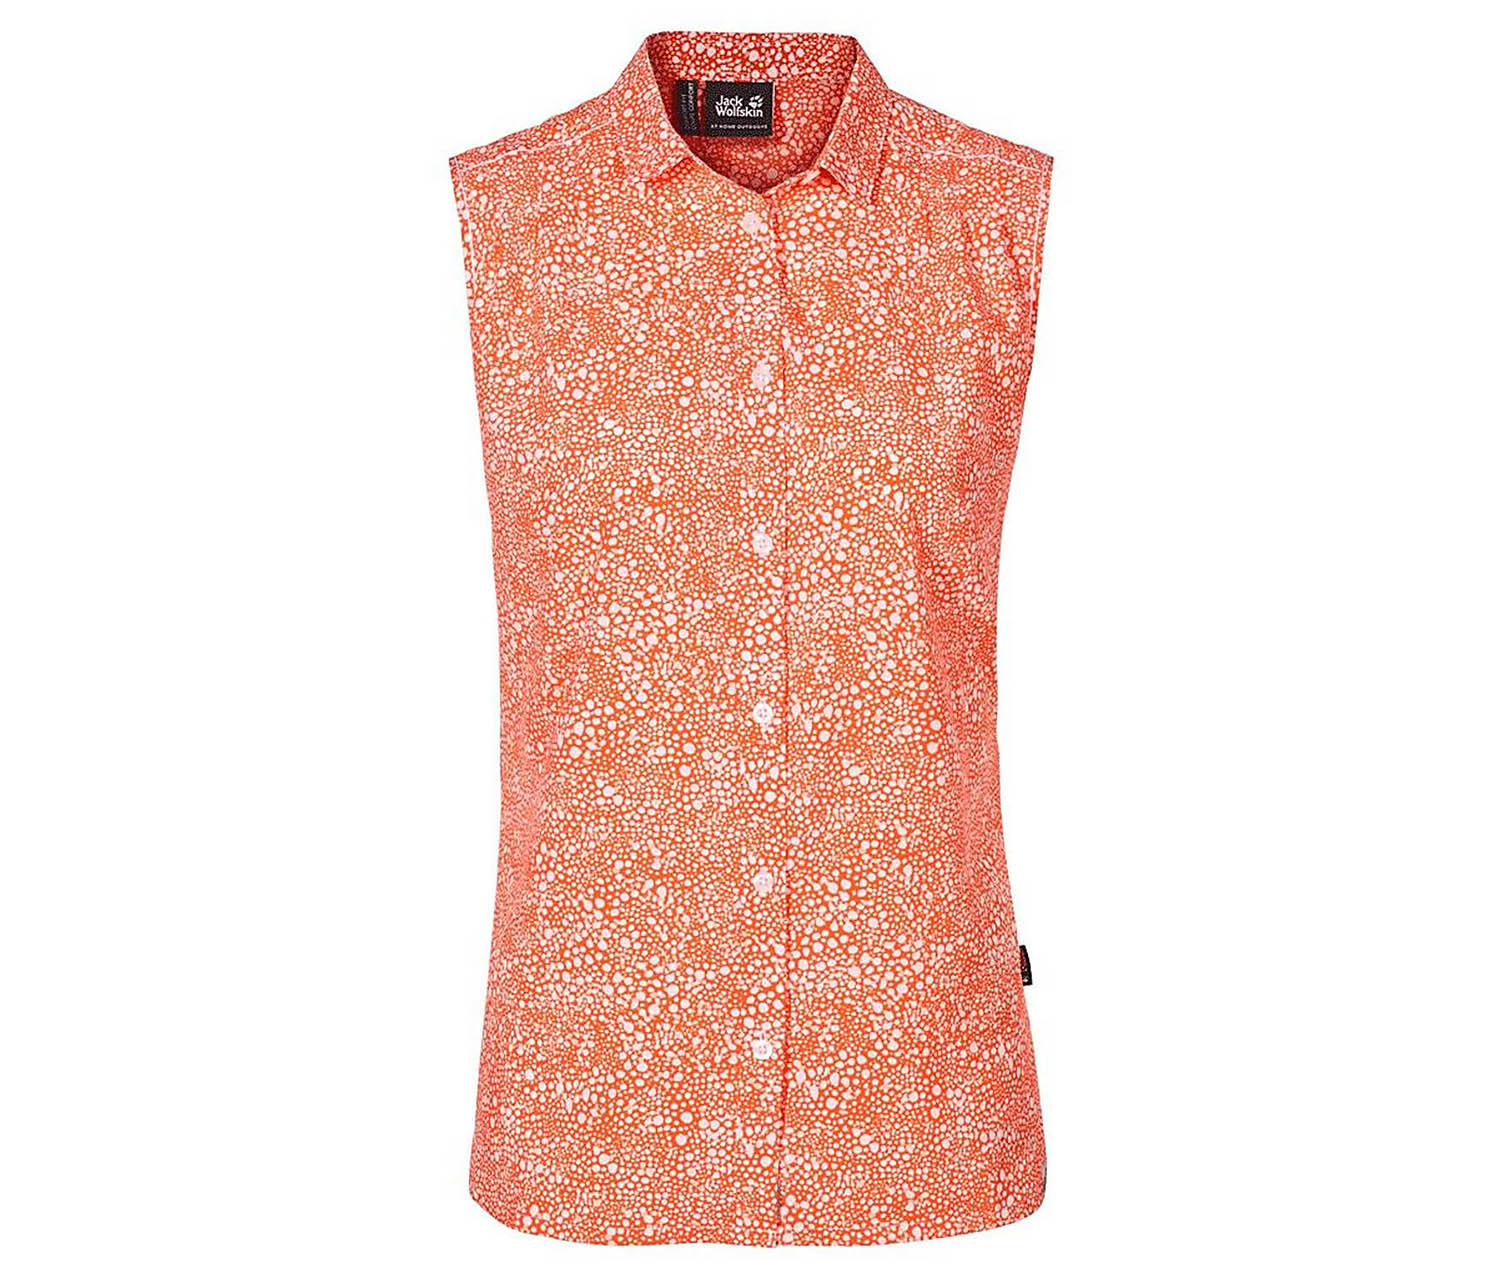 Jack Wolfskin Women's Print Sleeveless Shirt, Orange